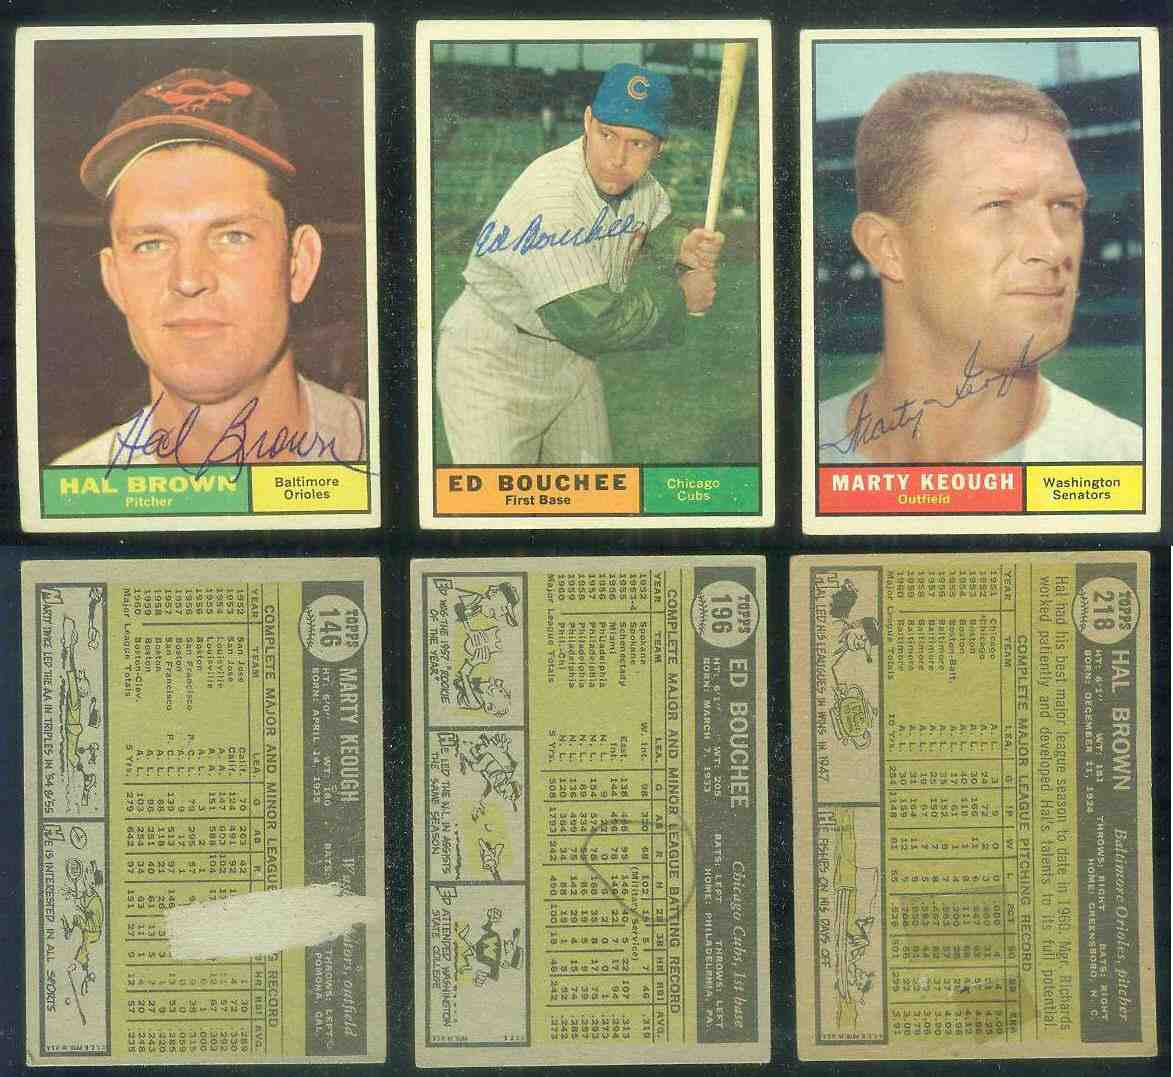 1961 Topps AUTOGRAPHED #146 Marty Keough w/PSA/DNA Auction LOA (Senators) [ Baseball cards value